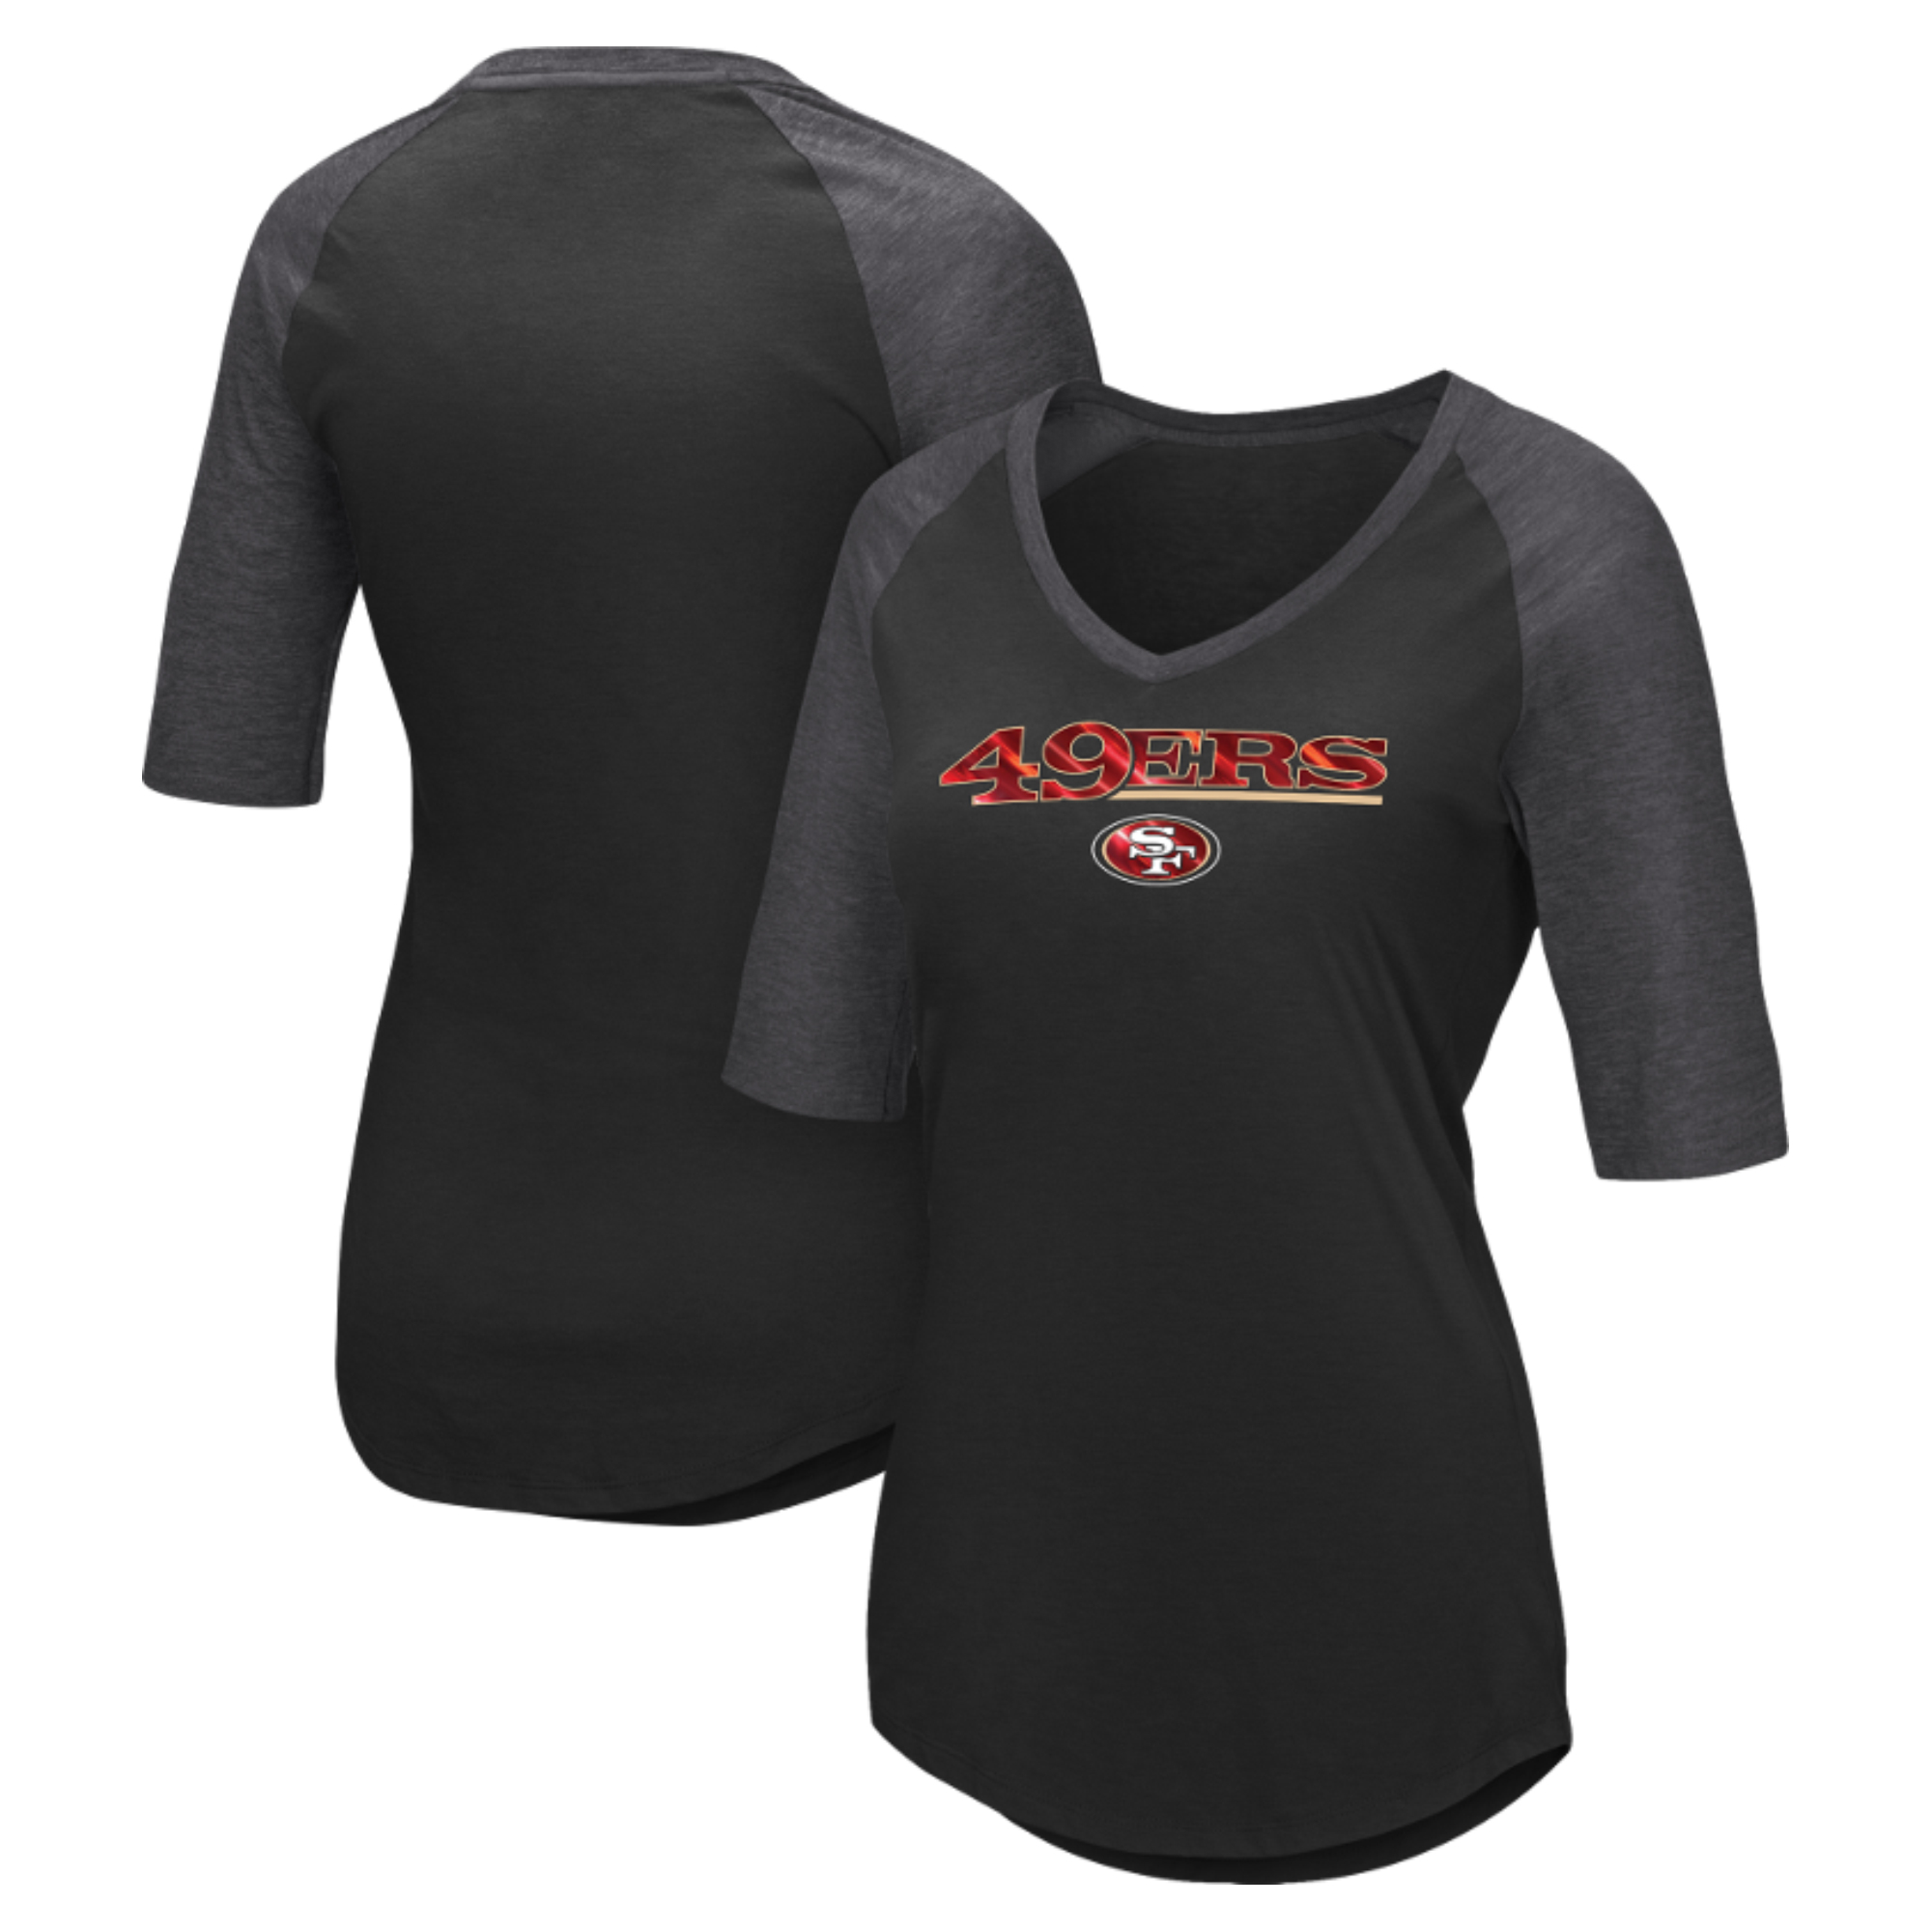 San Francisco 49ers Majestic Women's Gameday Glam Raglan Half-Sleeve T-Shirt - Black